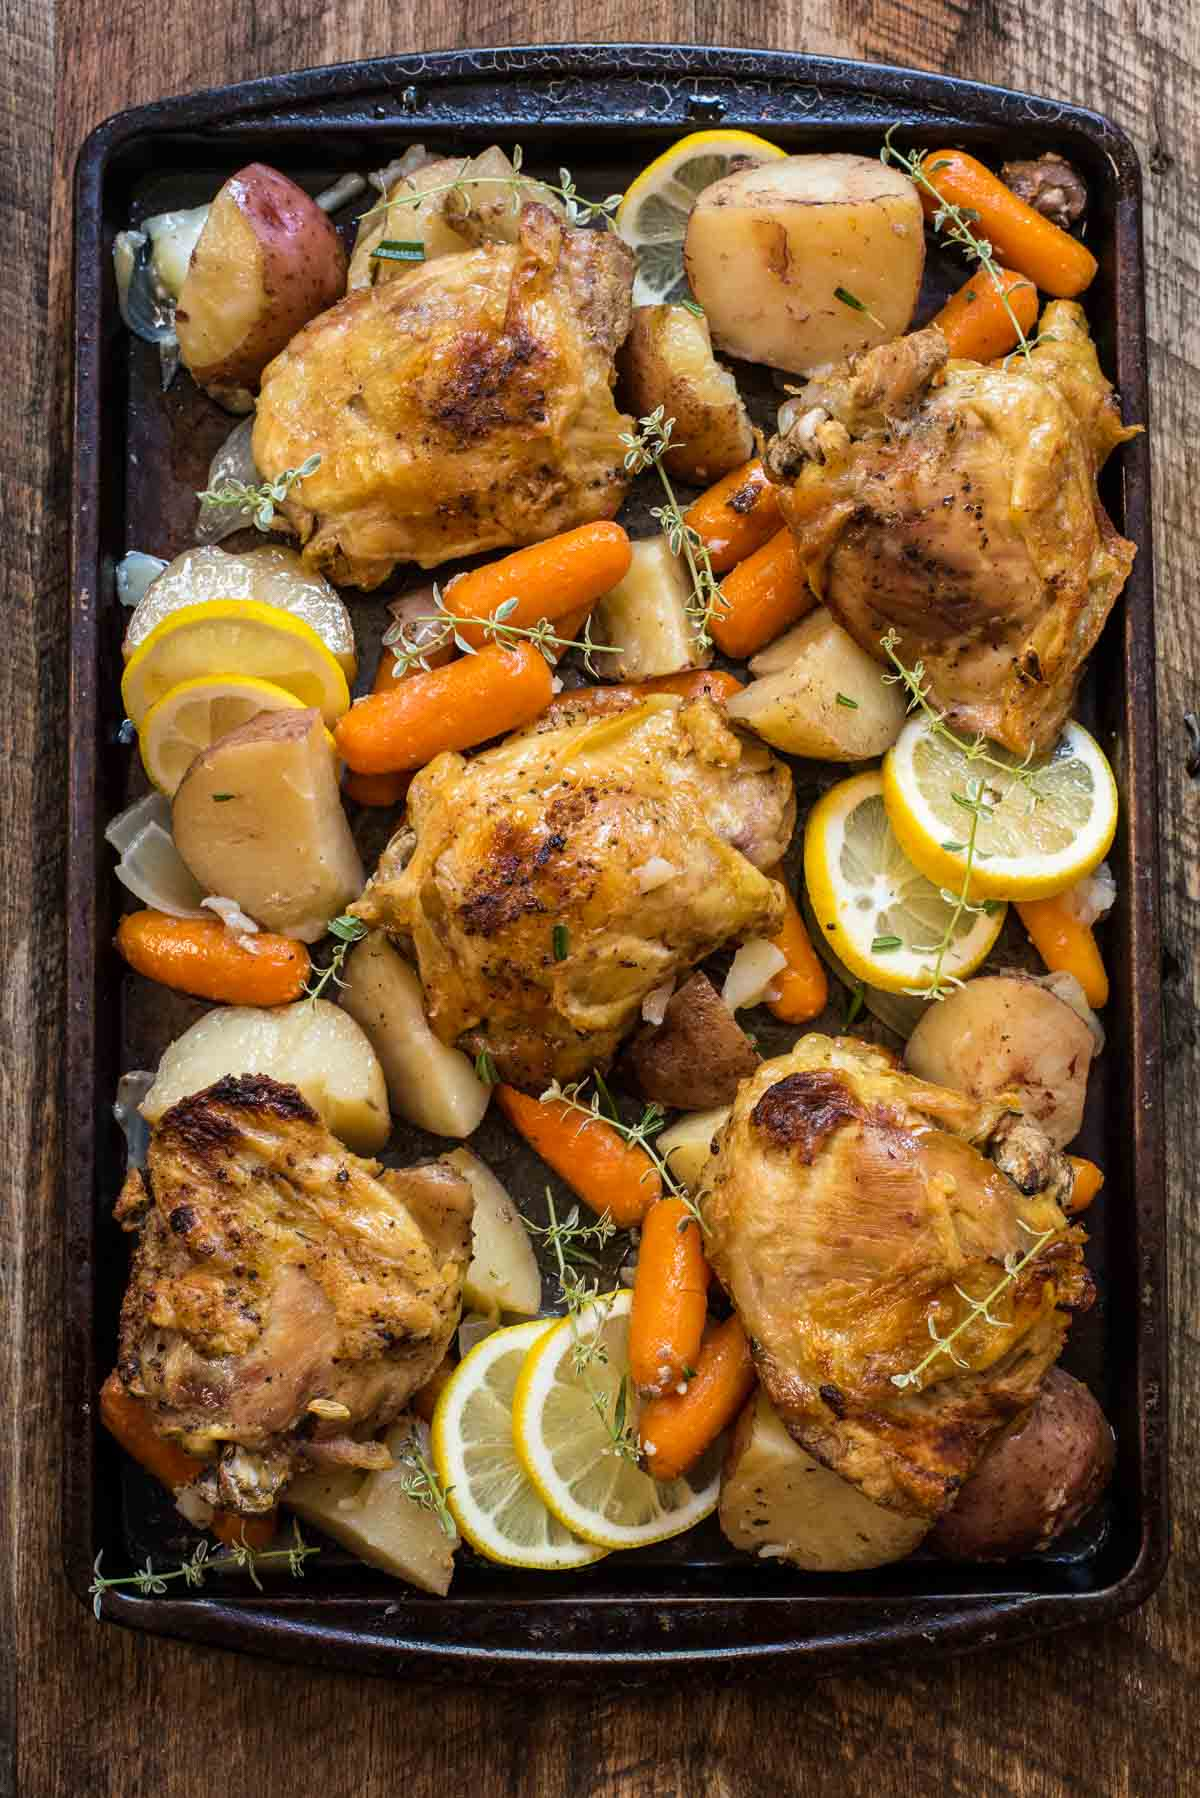 This Crock Pot Lemon Garlic Chicken is a ridiculously easy one-pot meal the whole family will love.